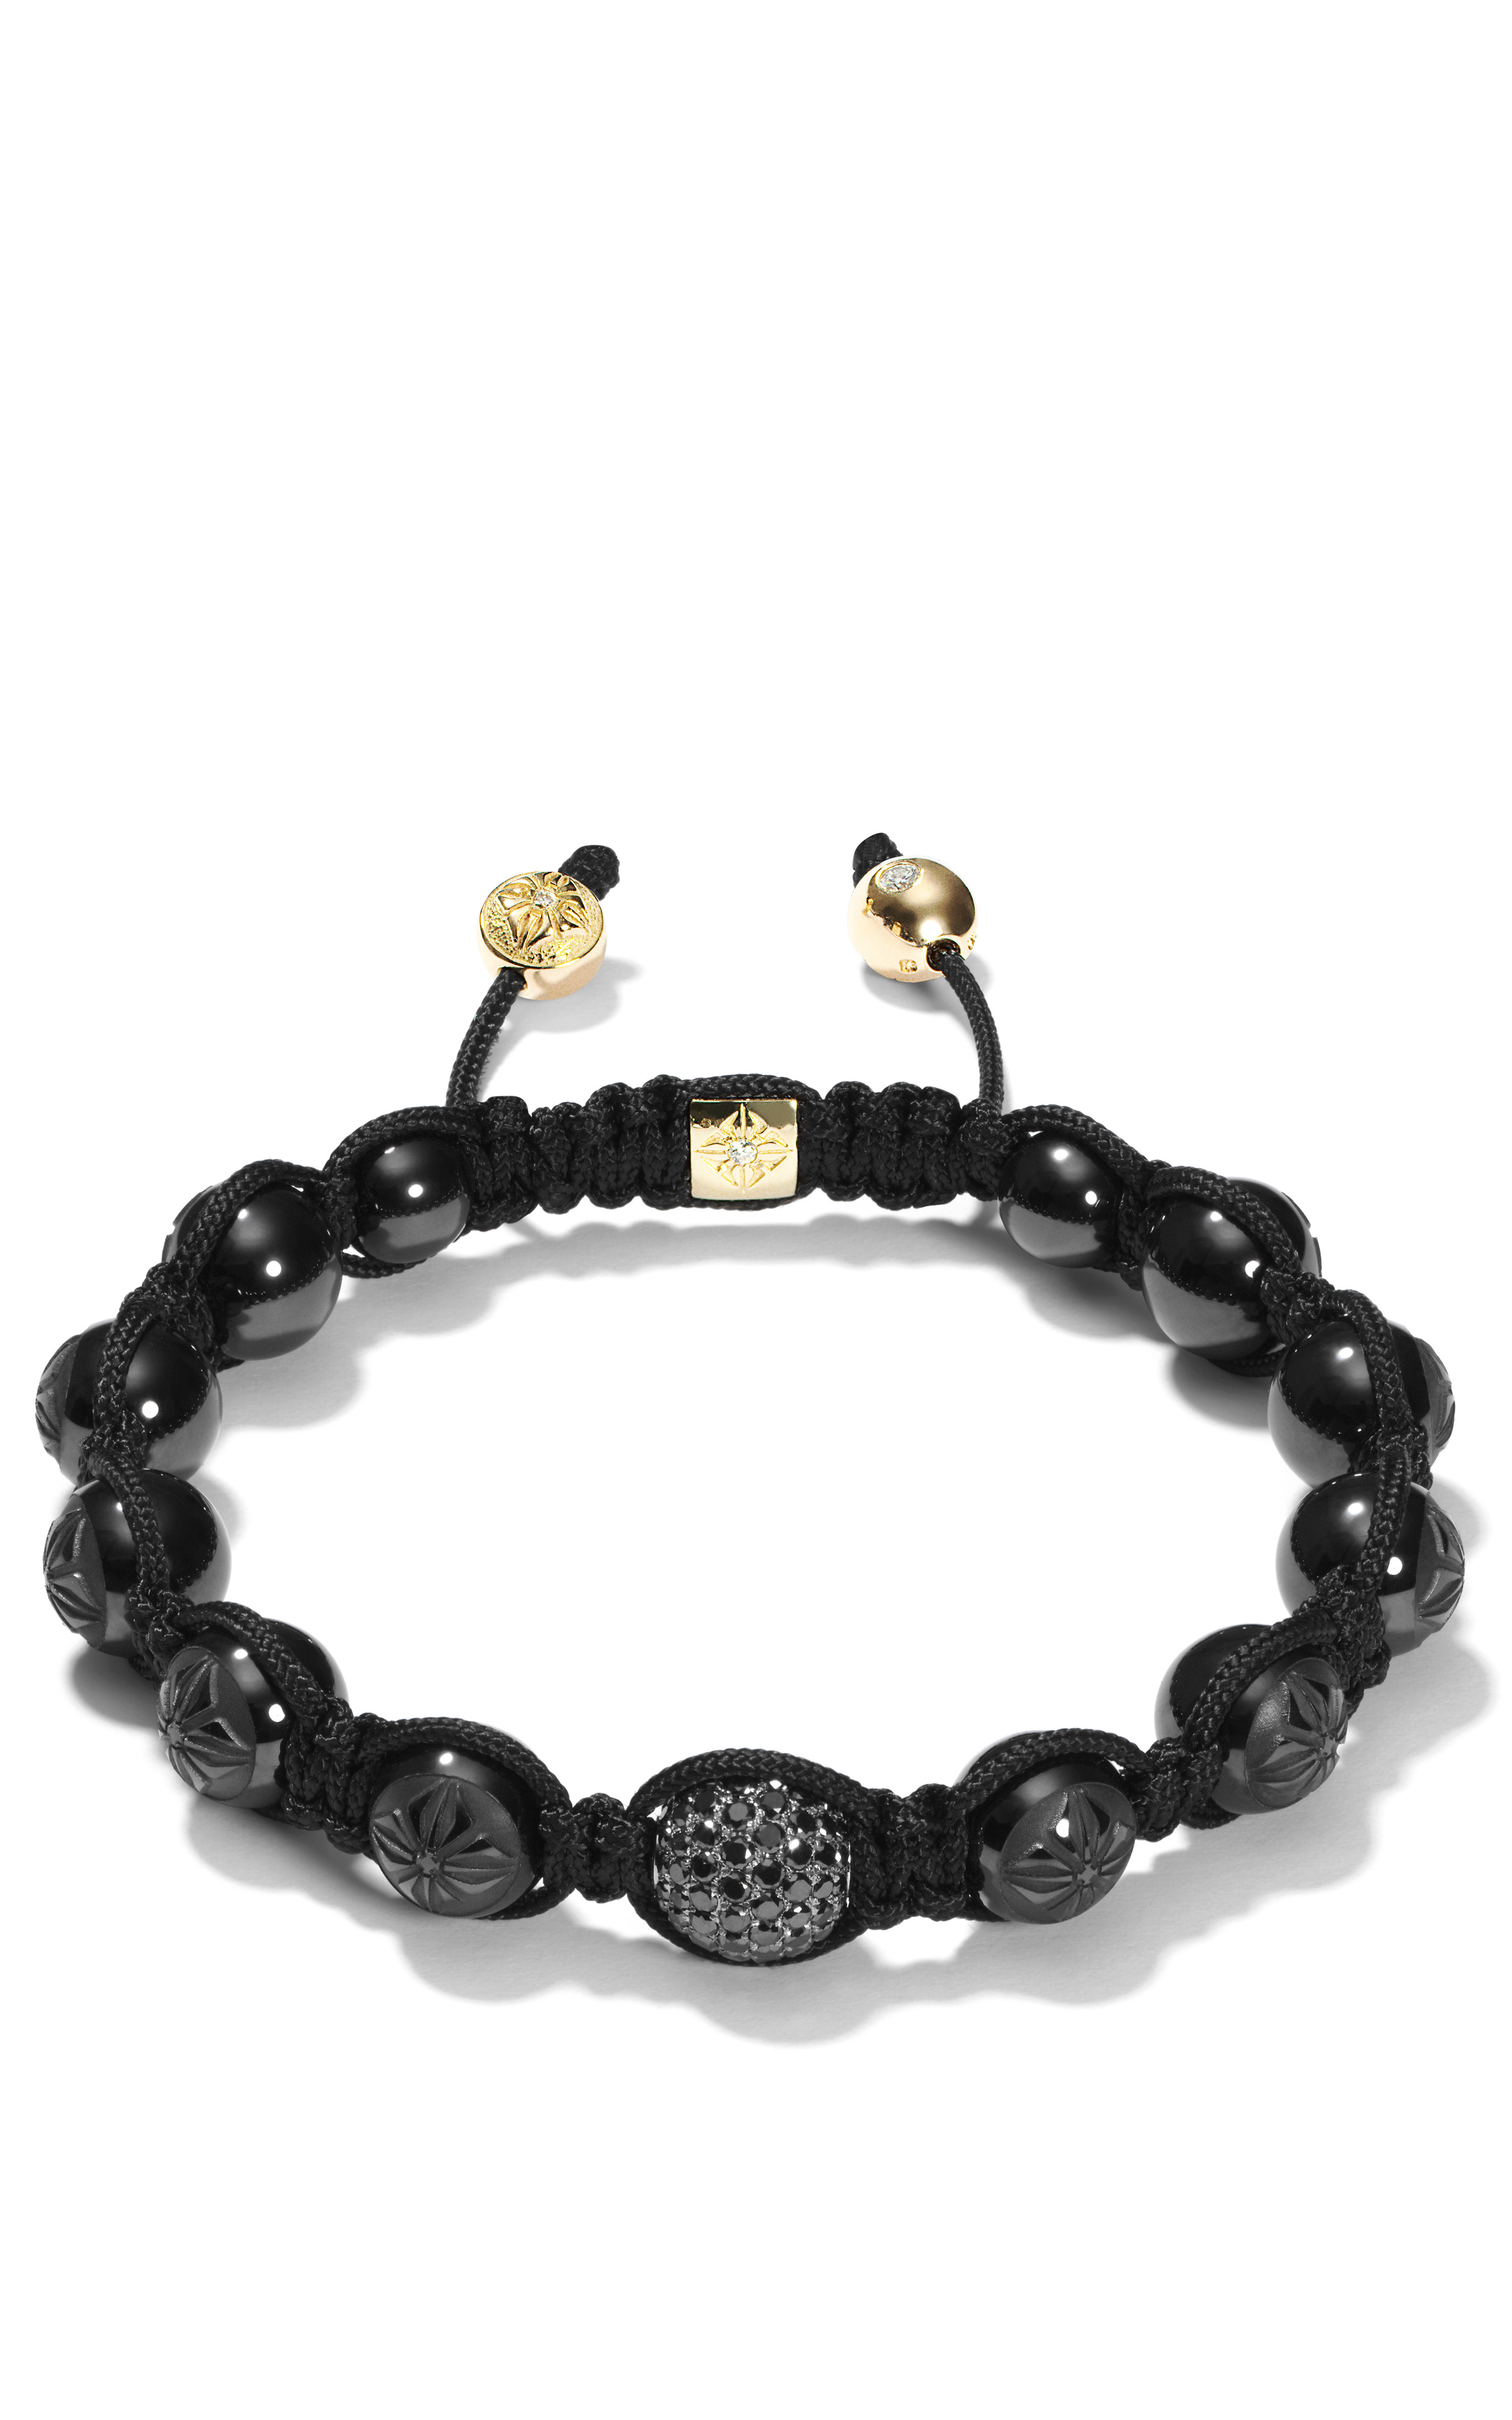 Diamond Anklet With Toe Ring Lc00035 In Anklets From: Shamballa Jewels Carved Ceramic Bracelet With Black